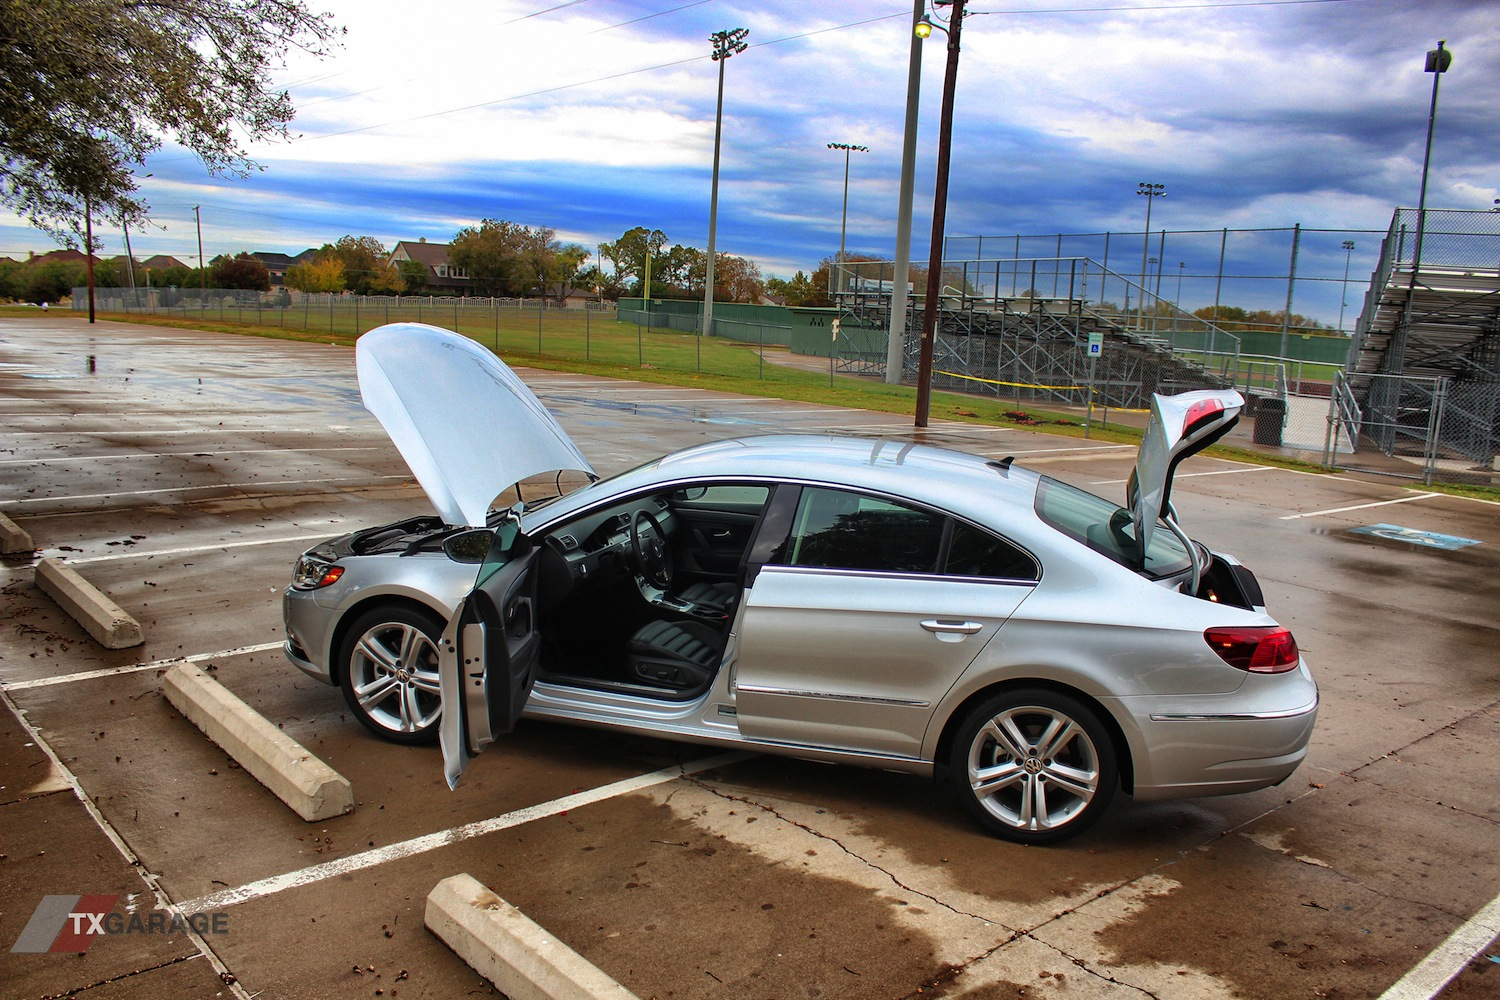 Full Review Of The 2013 Volkswagen Cc Sport Plus Txgarage